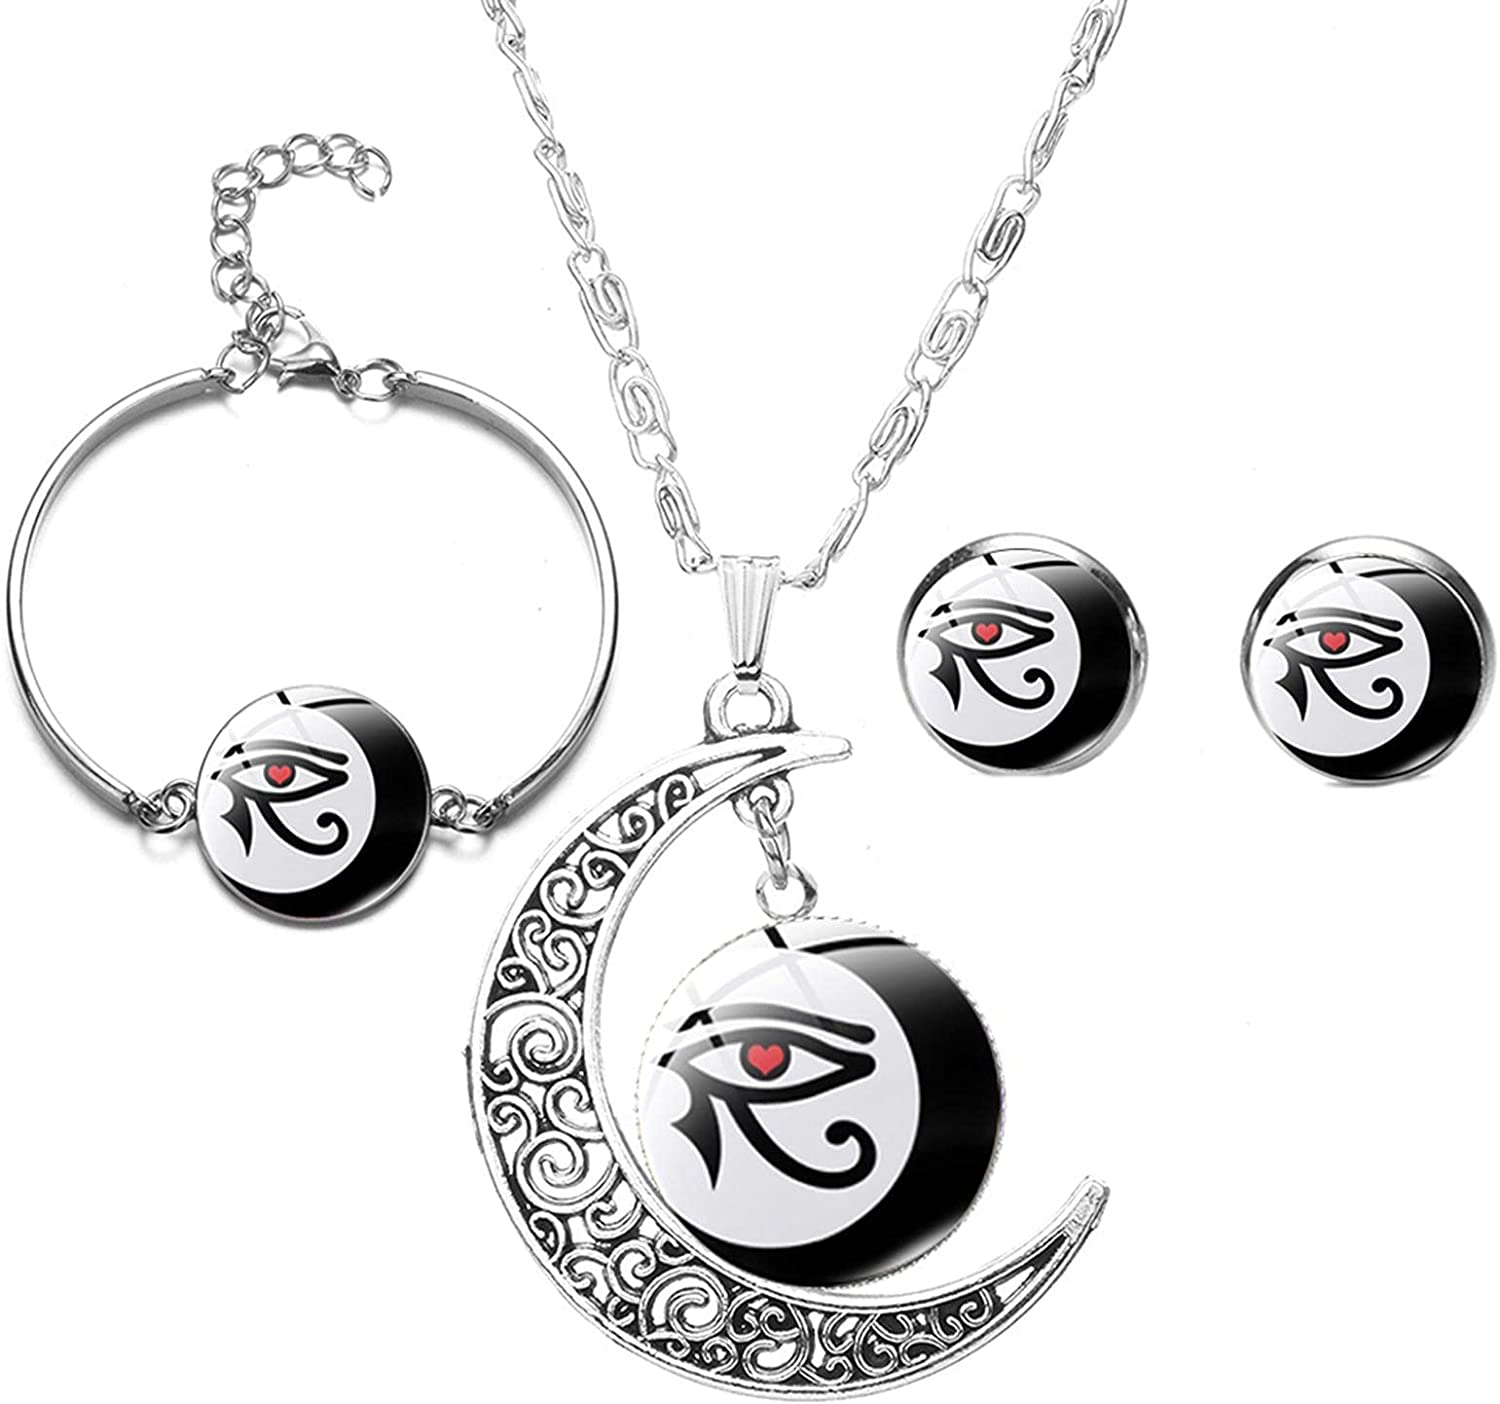 Ancient Egyptian Horus Eye Jewelry Set Rune Egypt Glass 2021 Evil Opening large release sale